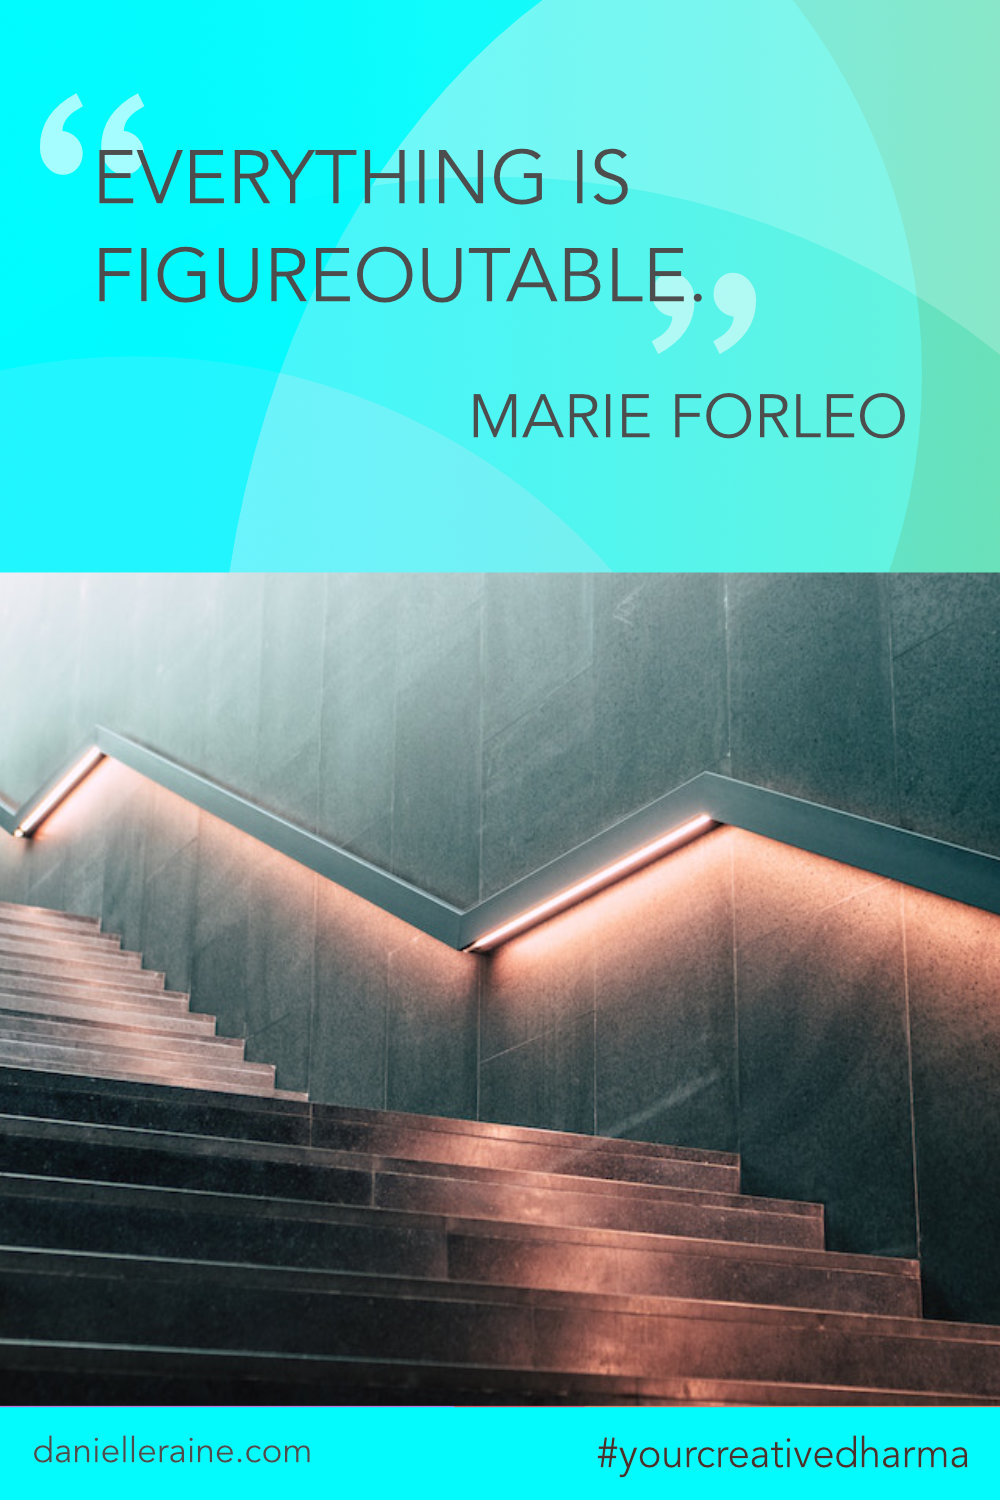 Your Creative Dharma quote Marie Forleo everything is figureoutable